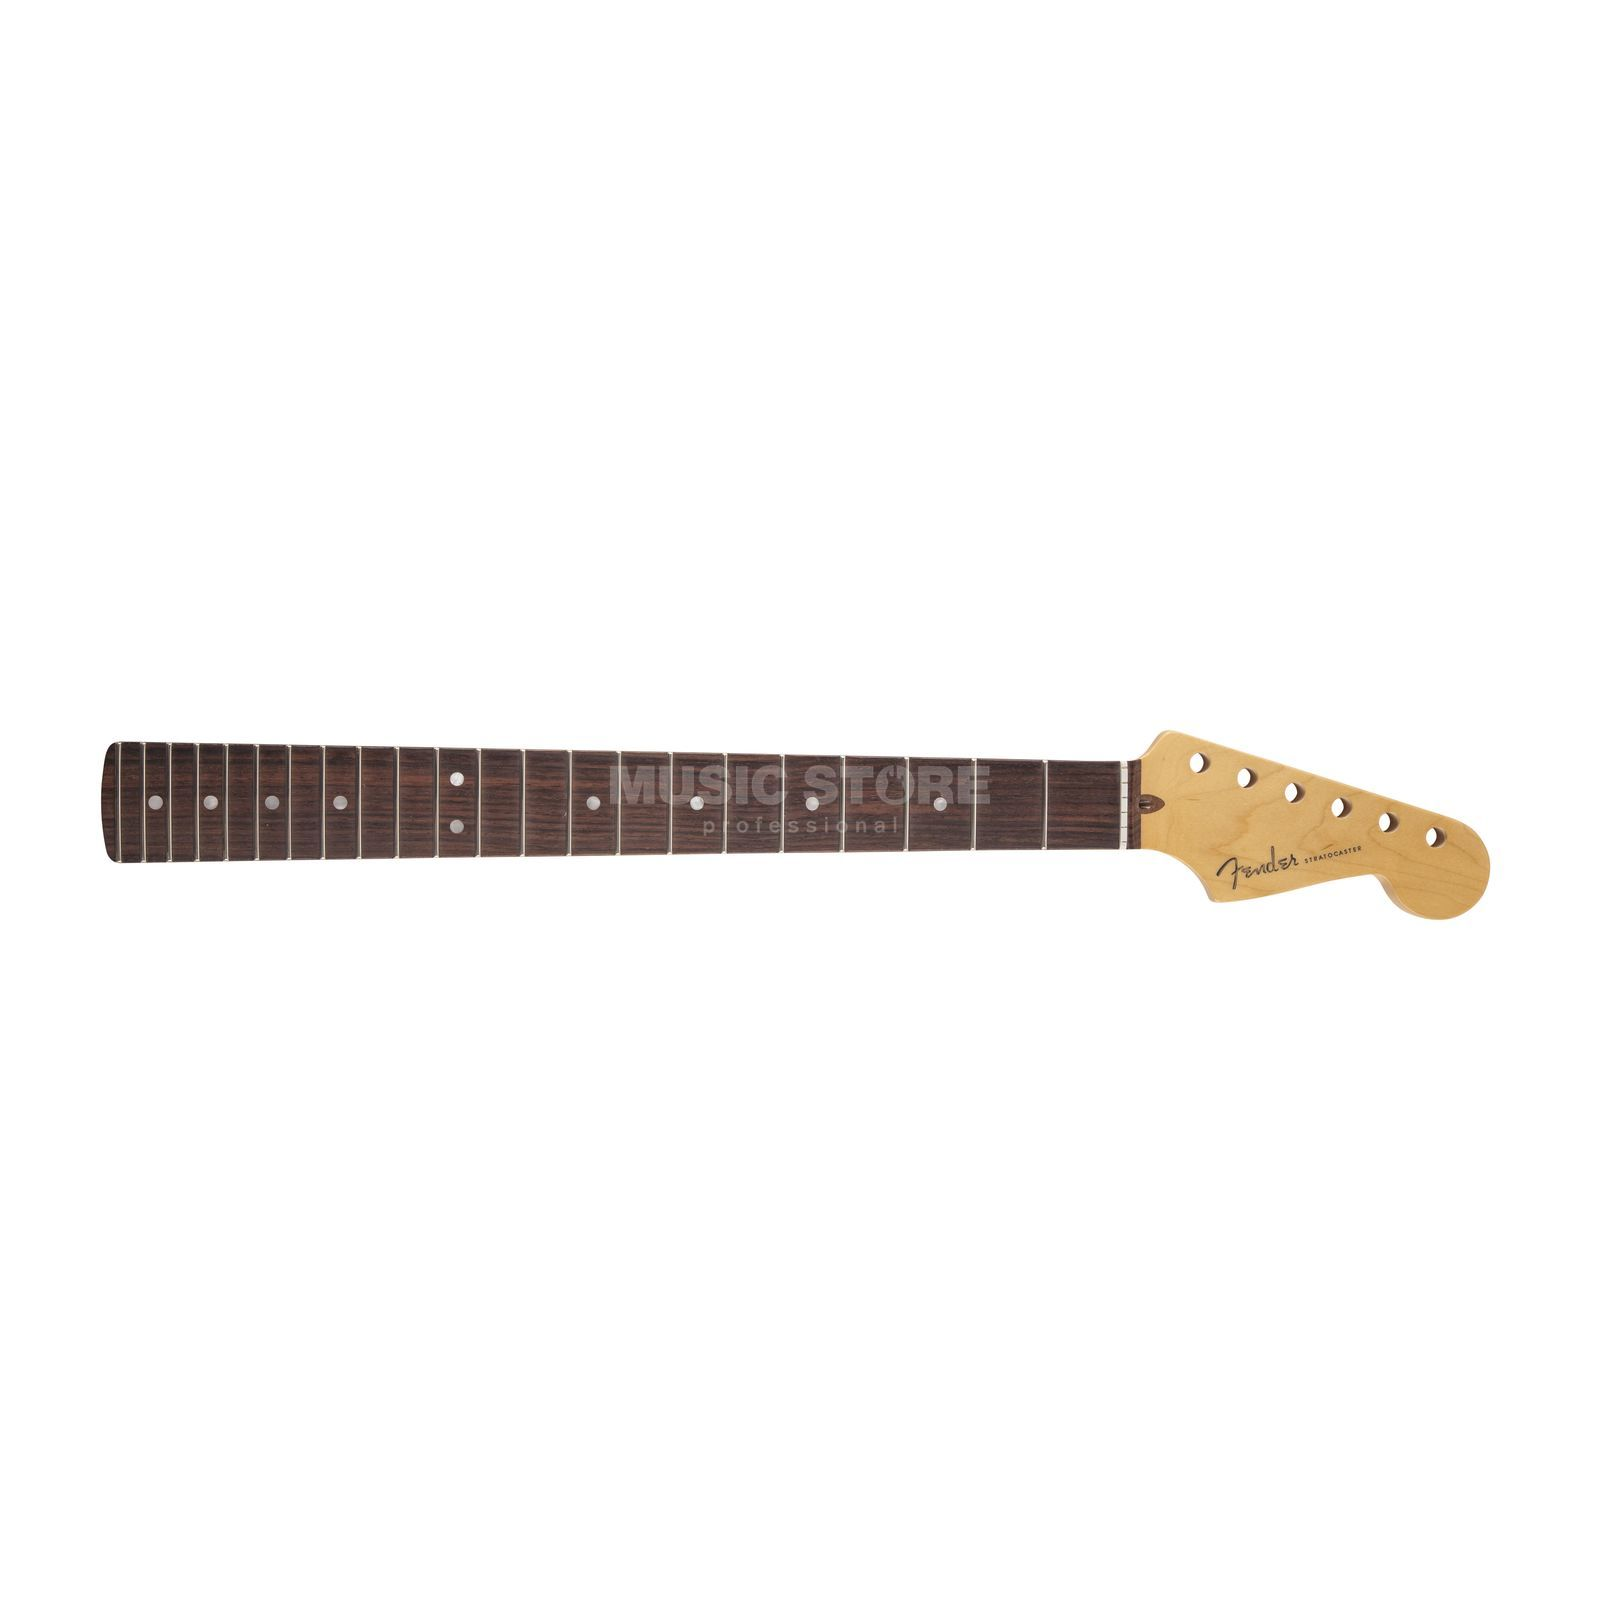 Fender USA Strat Neck 22 Frets RW Compound Radius Produktbild